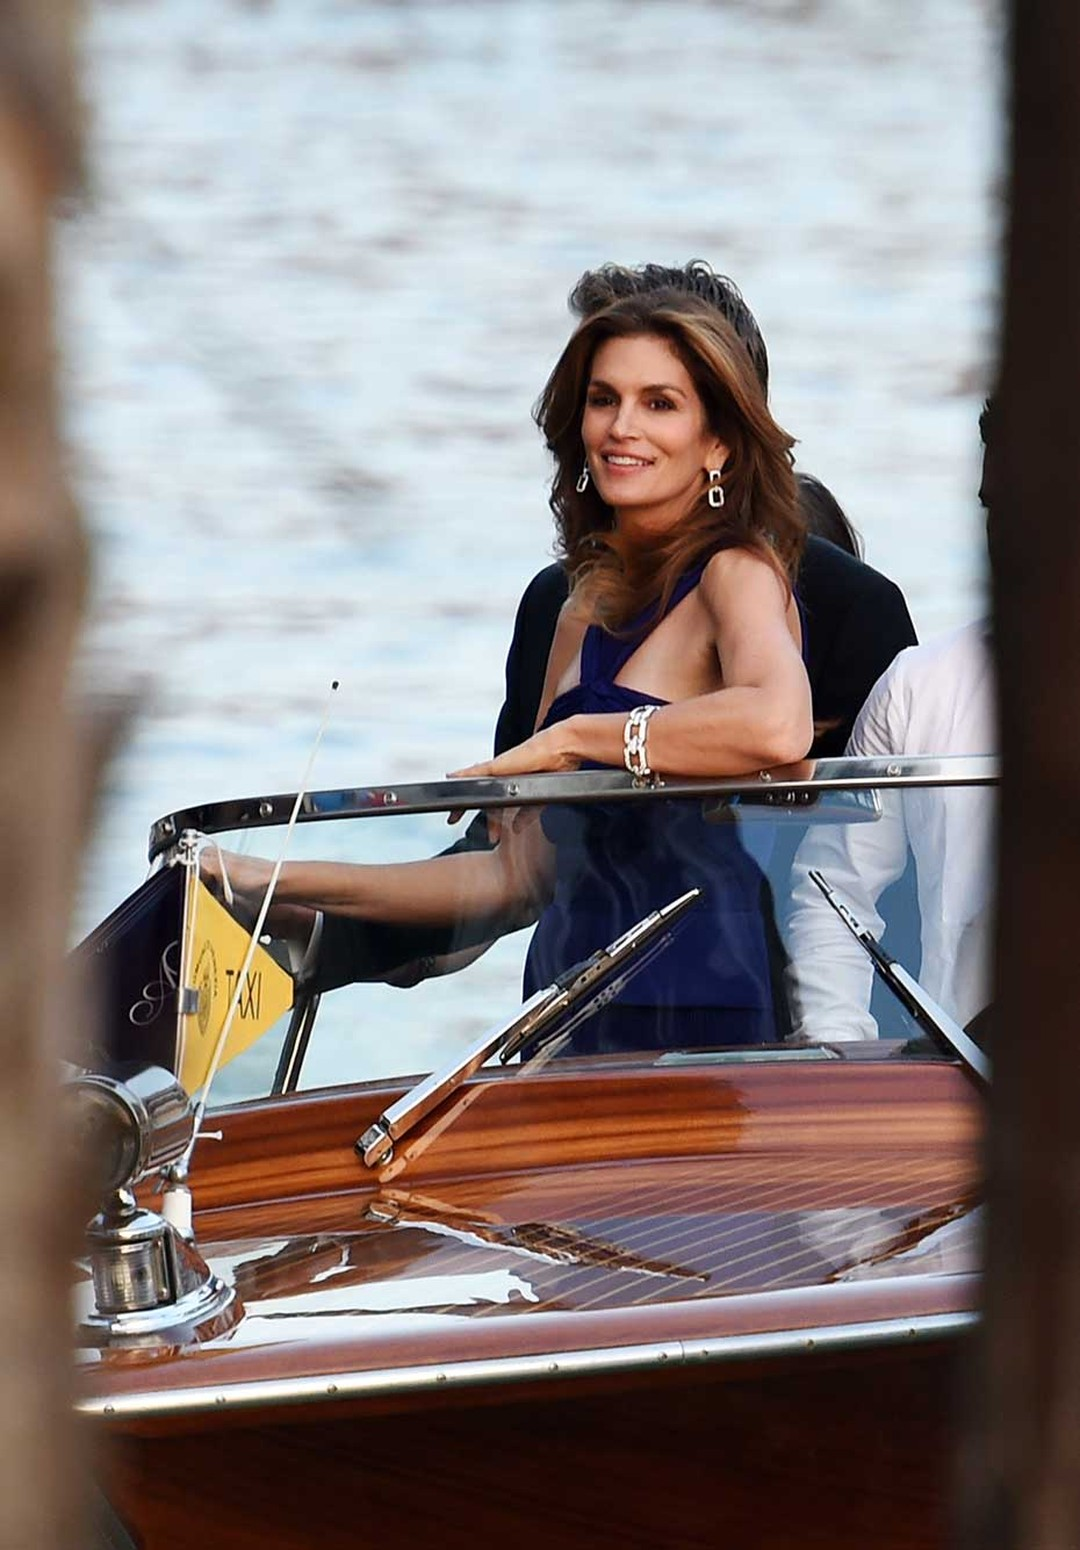 Cindy Crawford was one of many celebrity guests who celebrated the marriage of the world's most eligible bachelor, George Clooney, to the British-Lebanese lawyer Amal Alamuddin this weekend in Venice, accessorised with a generous sprinkling of Harry Winst